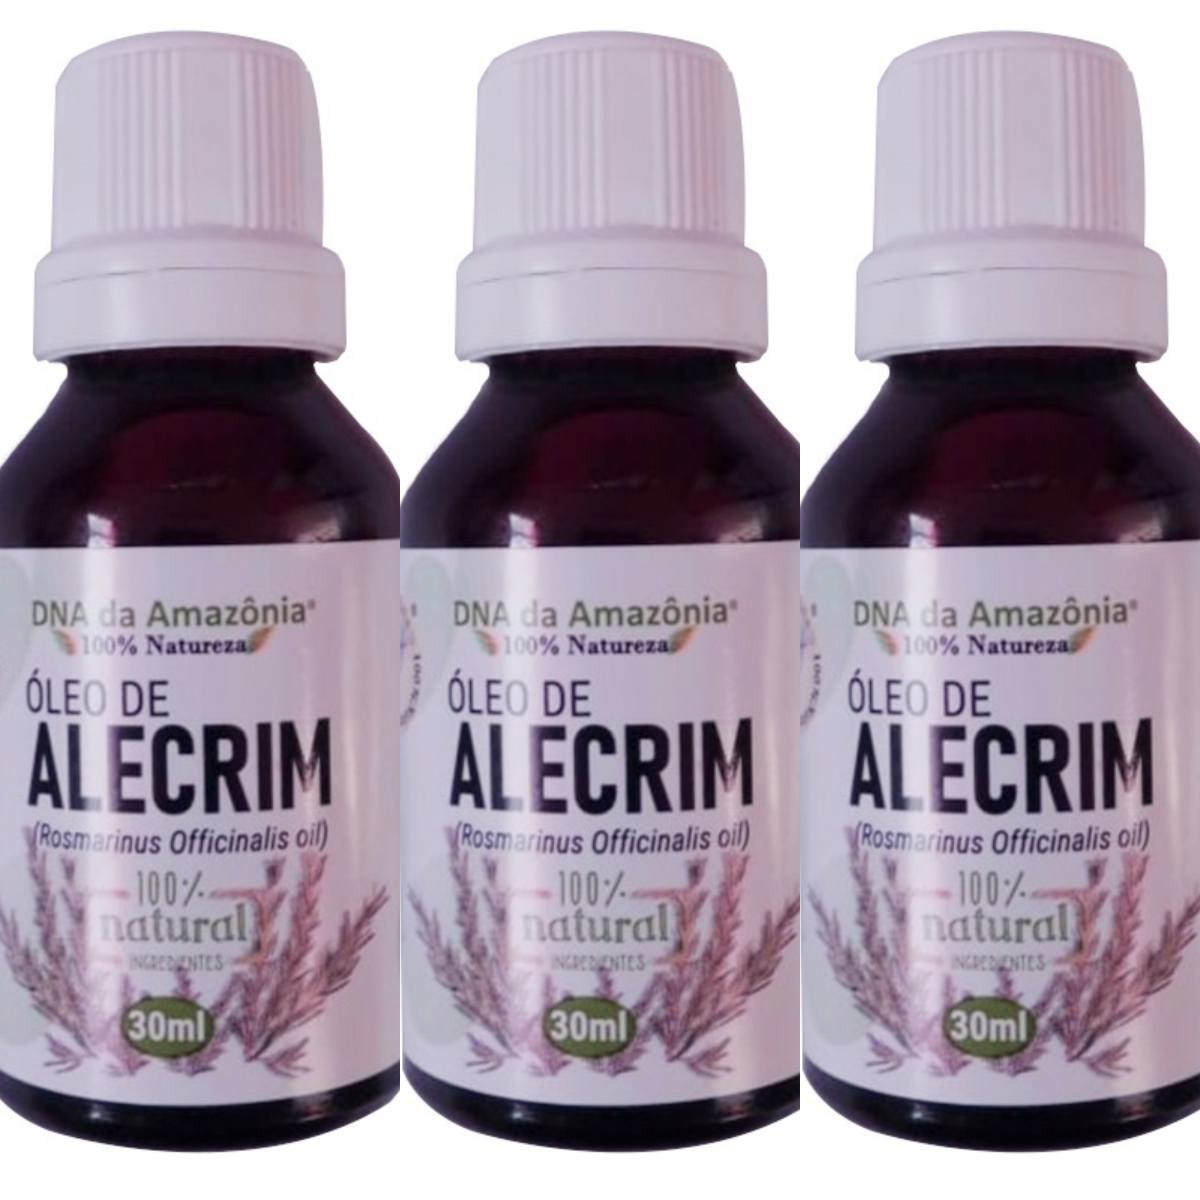 Kit Com 3 Óleos De Alecrim - 30Ml